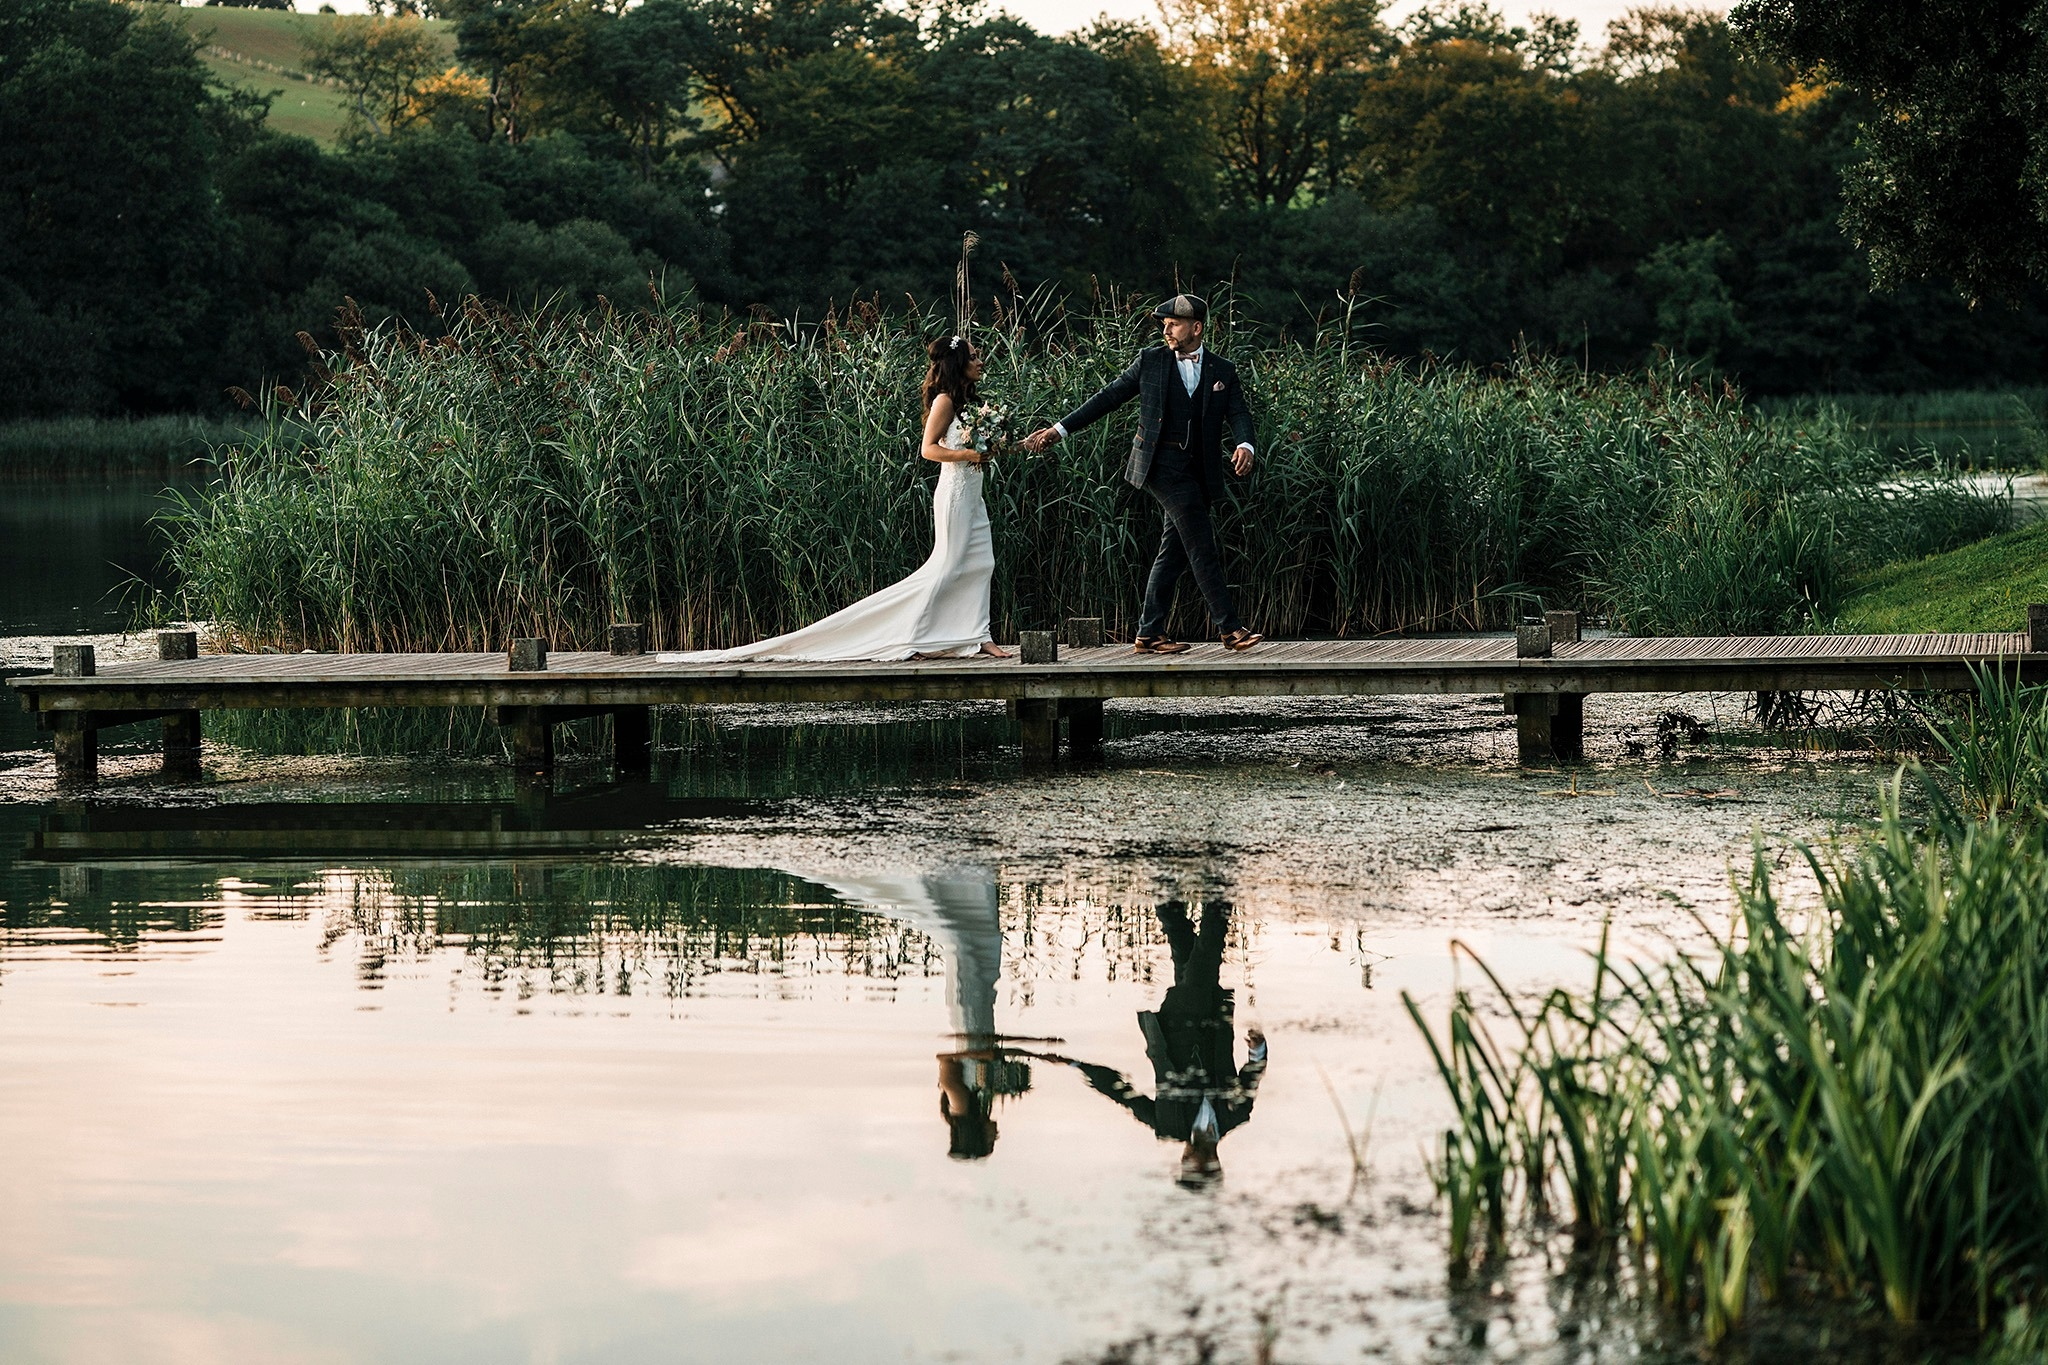 Bride and groom walking by the glistening lake